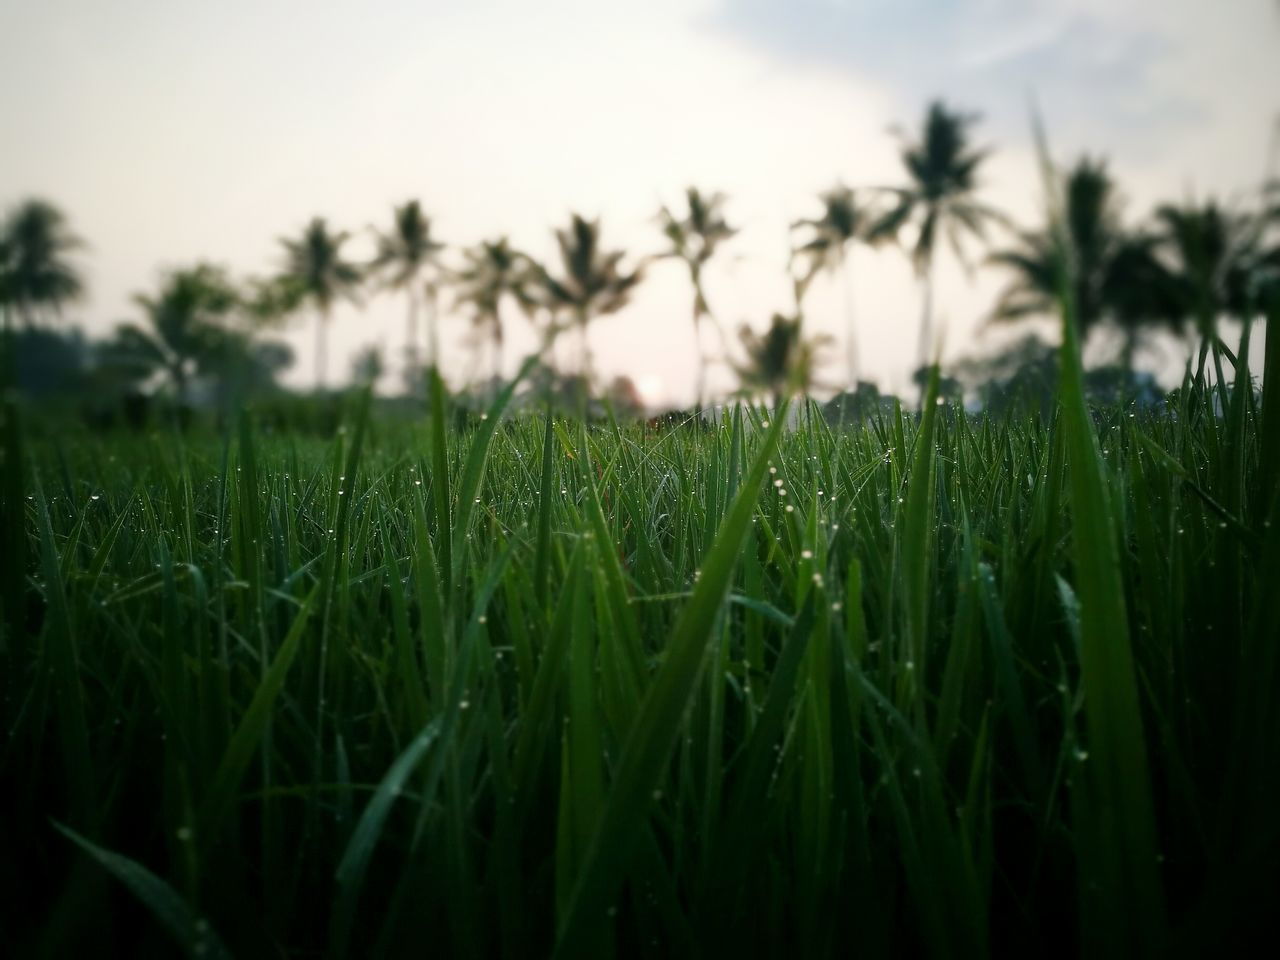 grass, growth, nature, field, green color, wheat, agriculture, no people, landscape, clear sky, beauty in nature, outdoors, sky, close-up, day